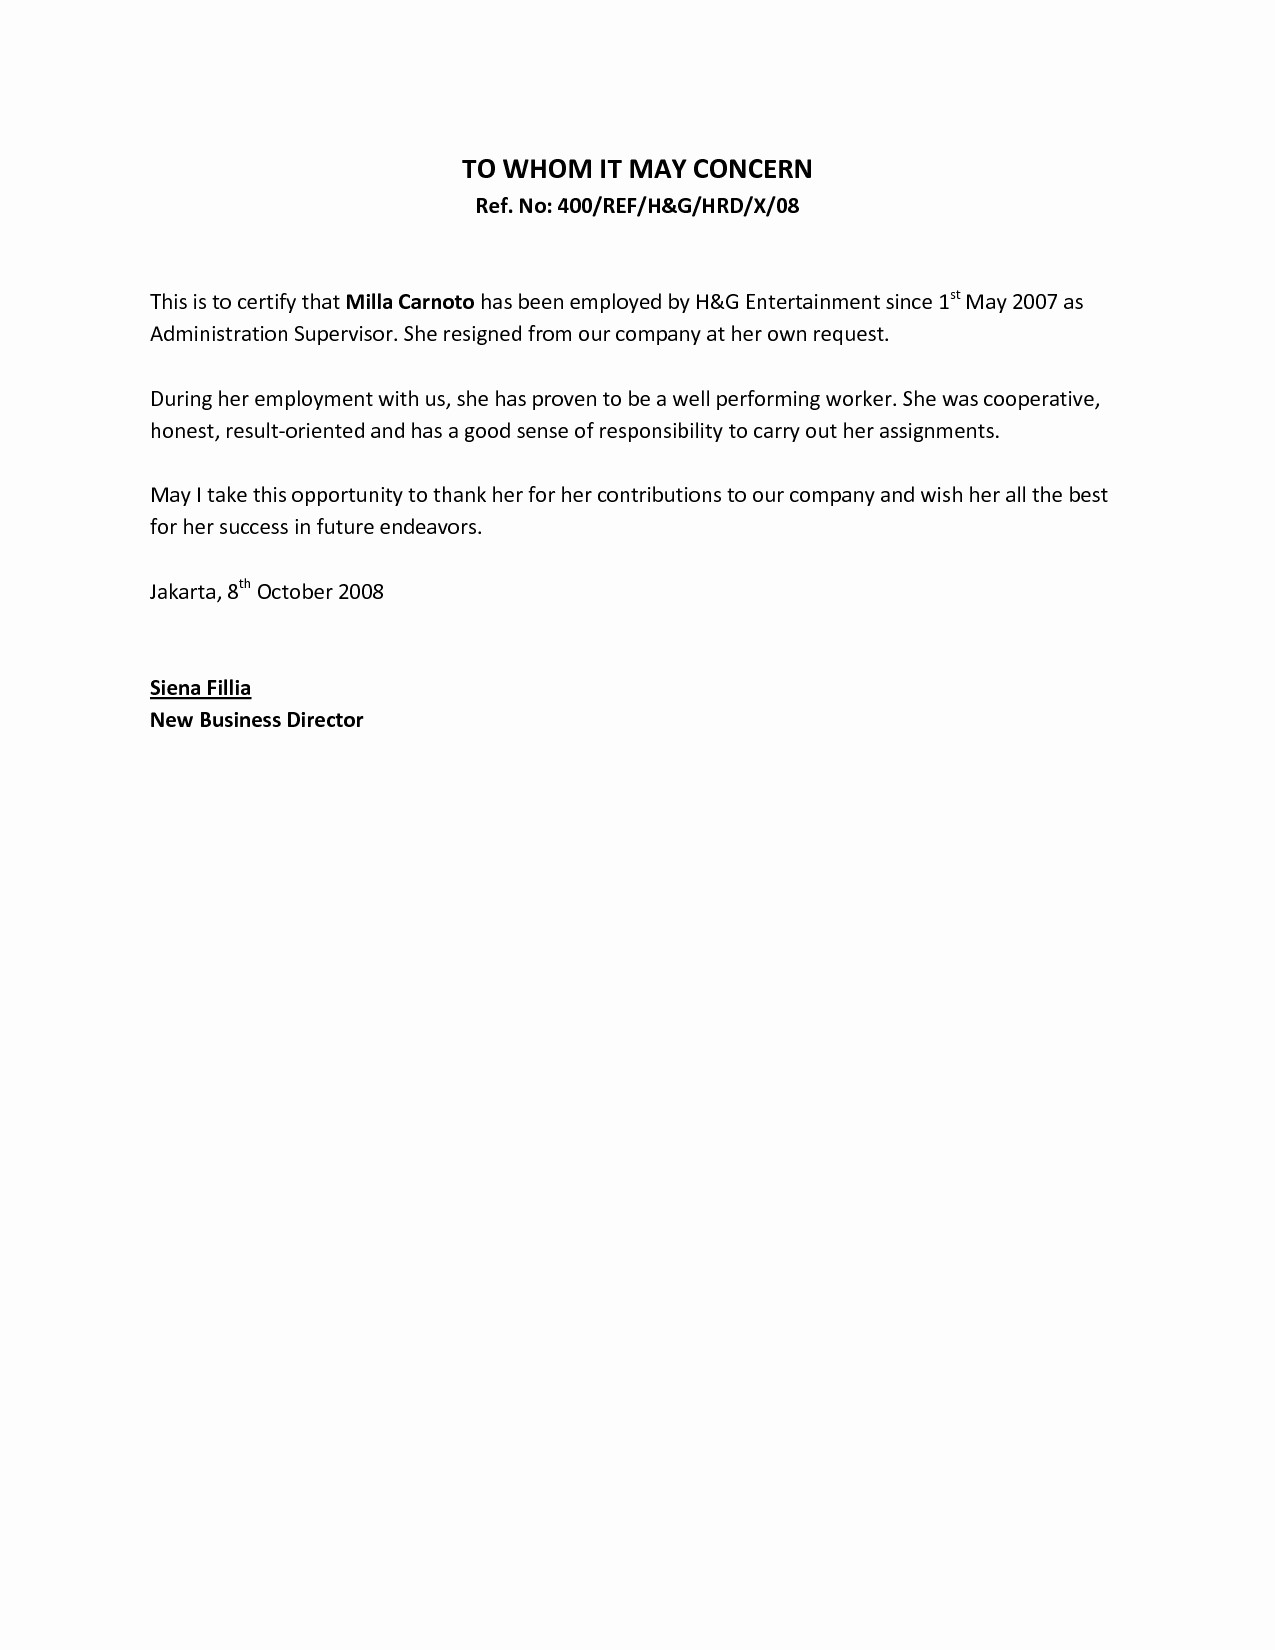 Letter Of Recommendation Employment Template Elegant Job Letter From Employer